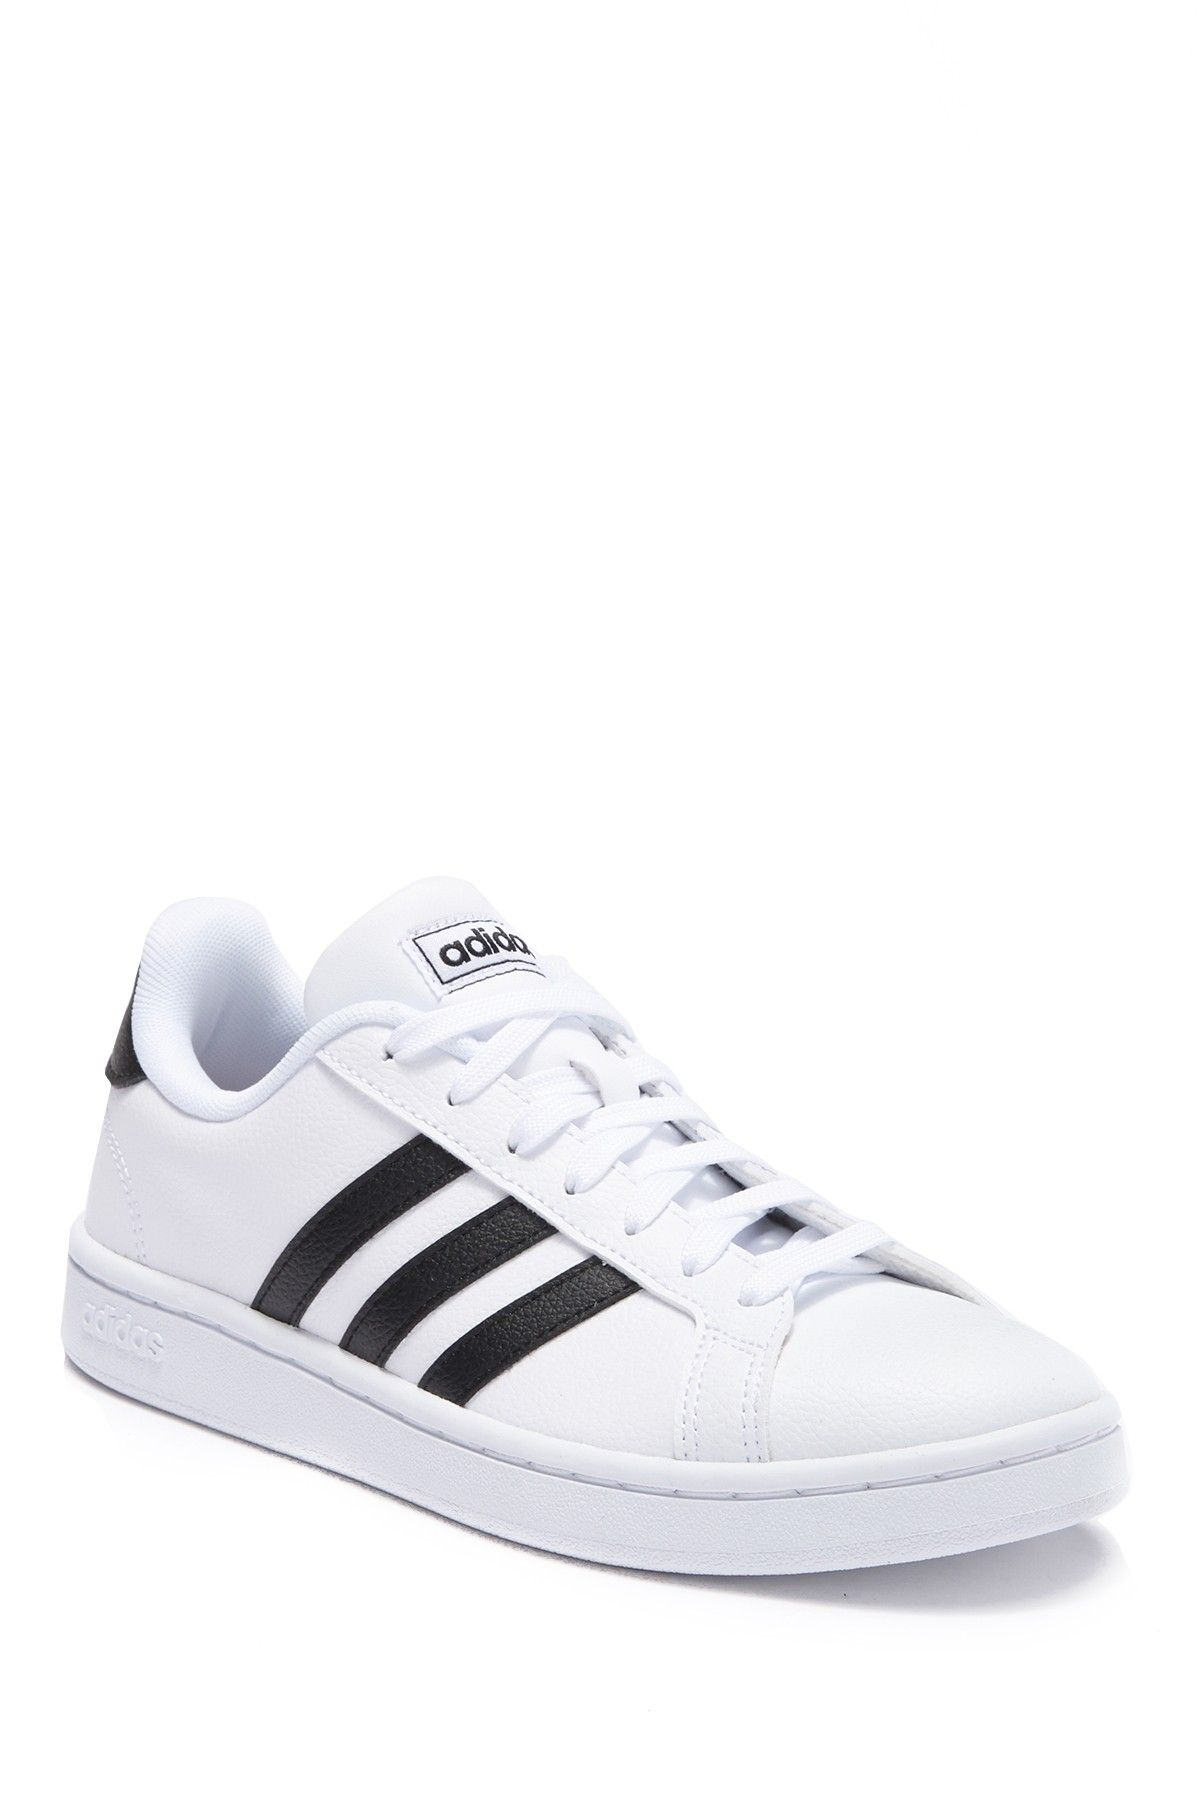 adidas superstar 23